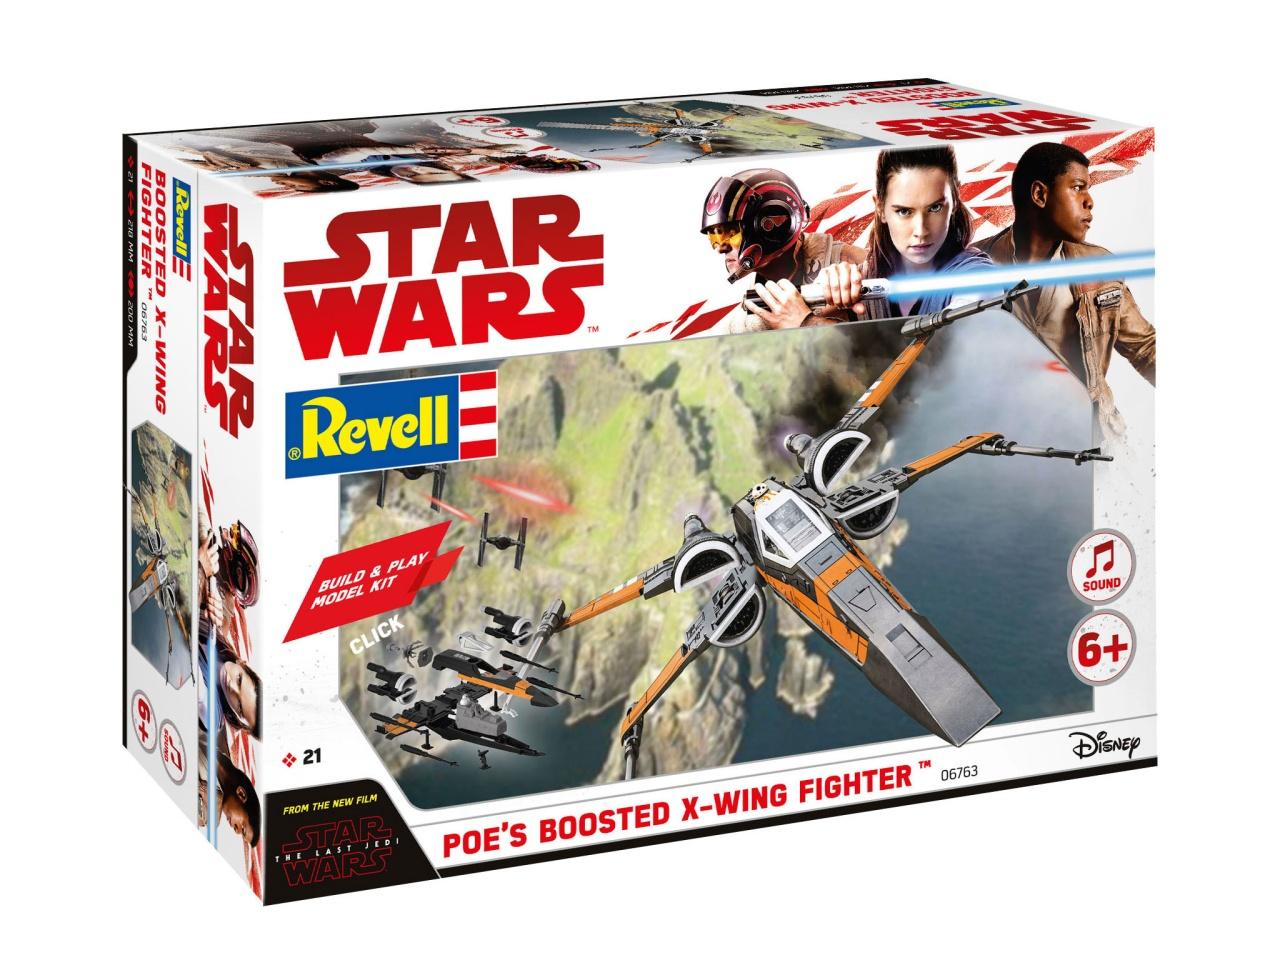 Revell 06763 Star Wars Build & Play Poes Boosted X-Wing Fig